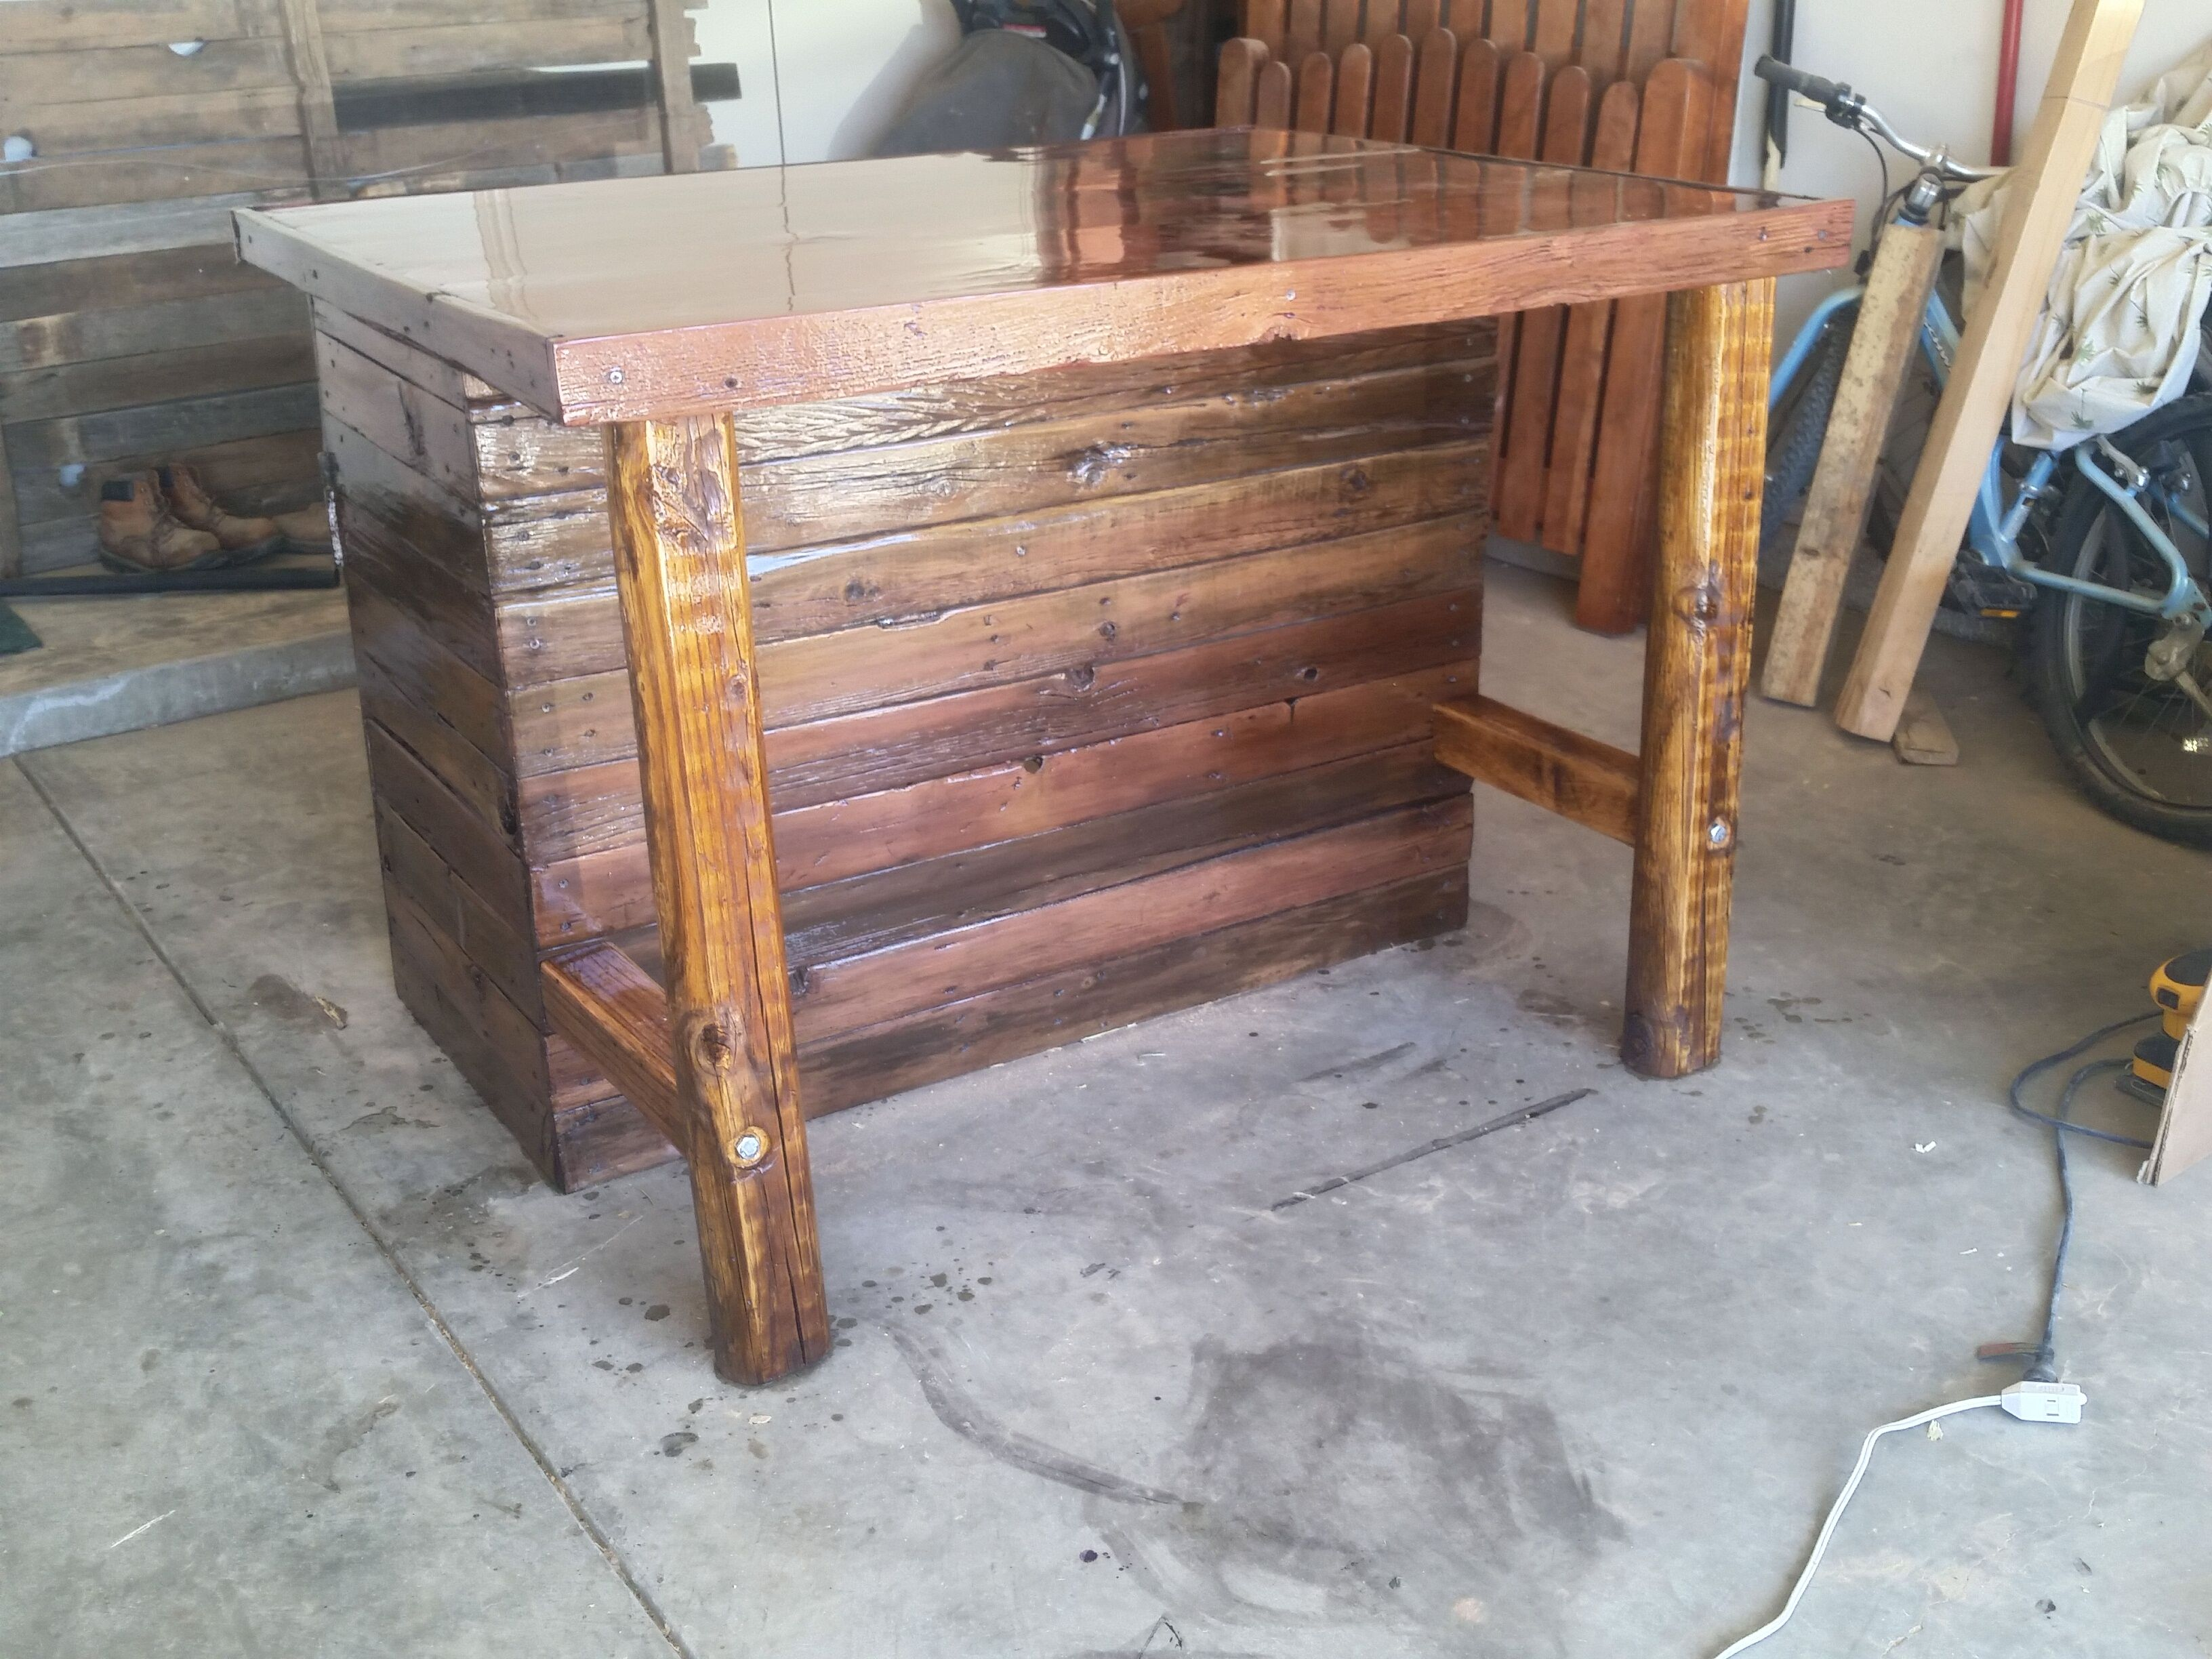 Custom Made Rustic Kitchen Island Or Outdoor BarHandmade Rustic Kitchen Island Or Outdoor Bar by Cowboy Creation  . Rustic Kitchen Island. Home Design Ideas